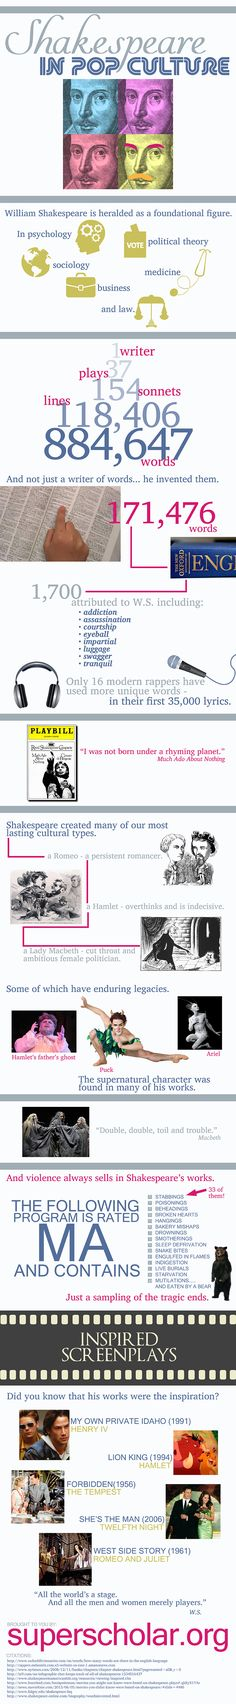 Shakespeare in Pop Culture | Super Scholar